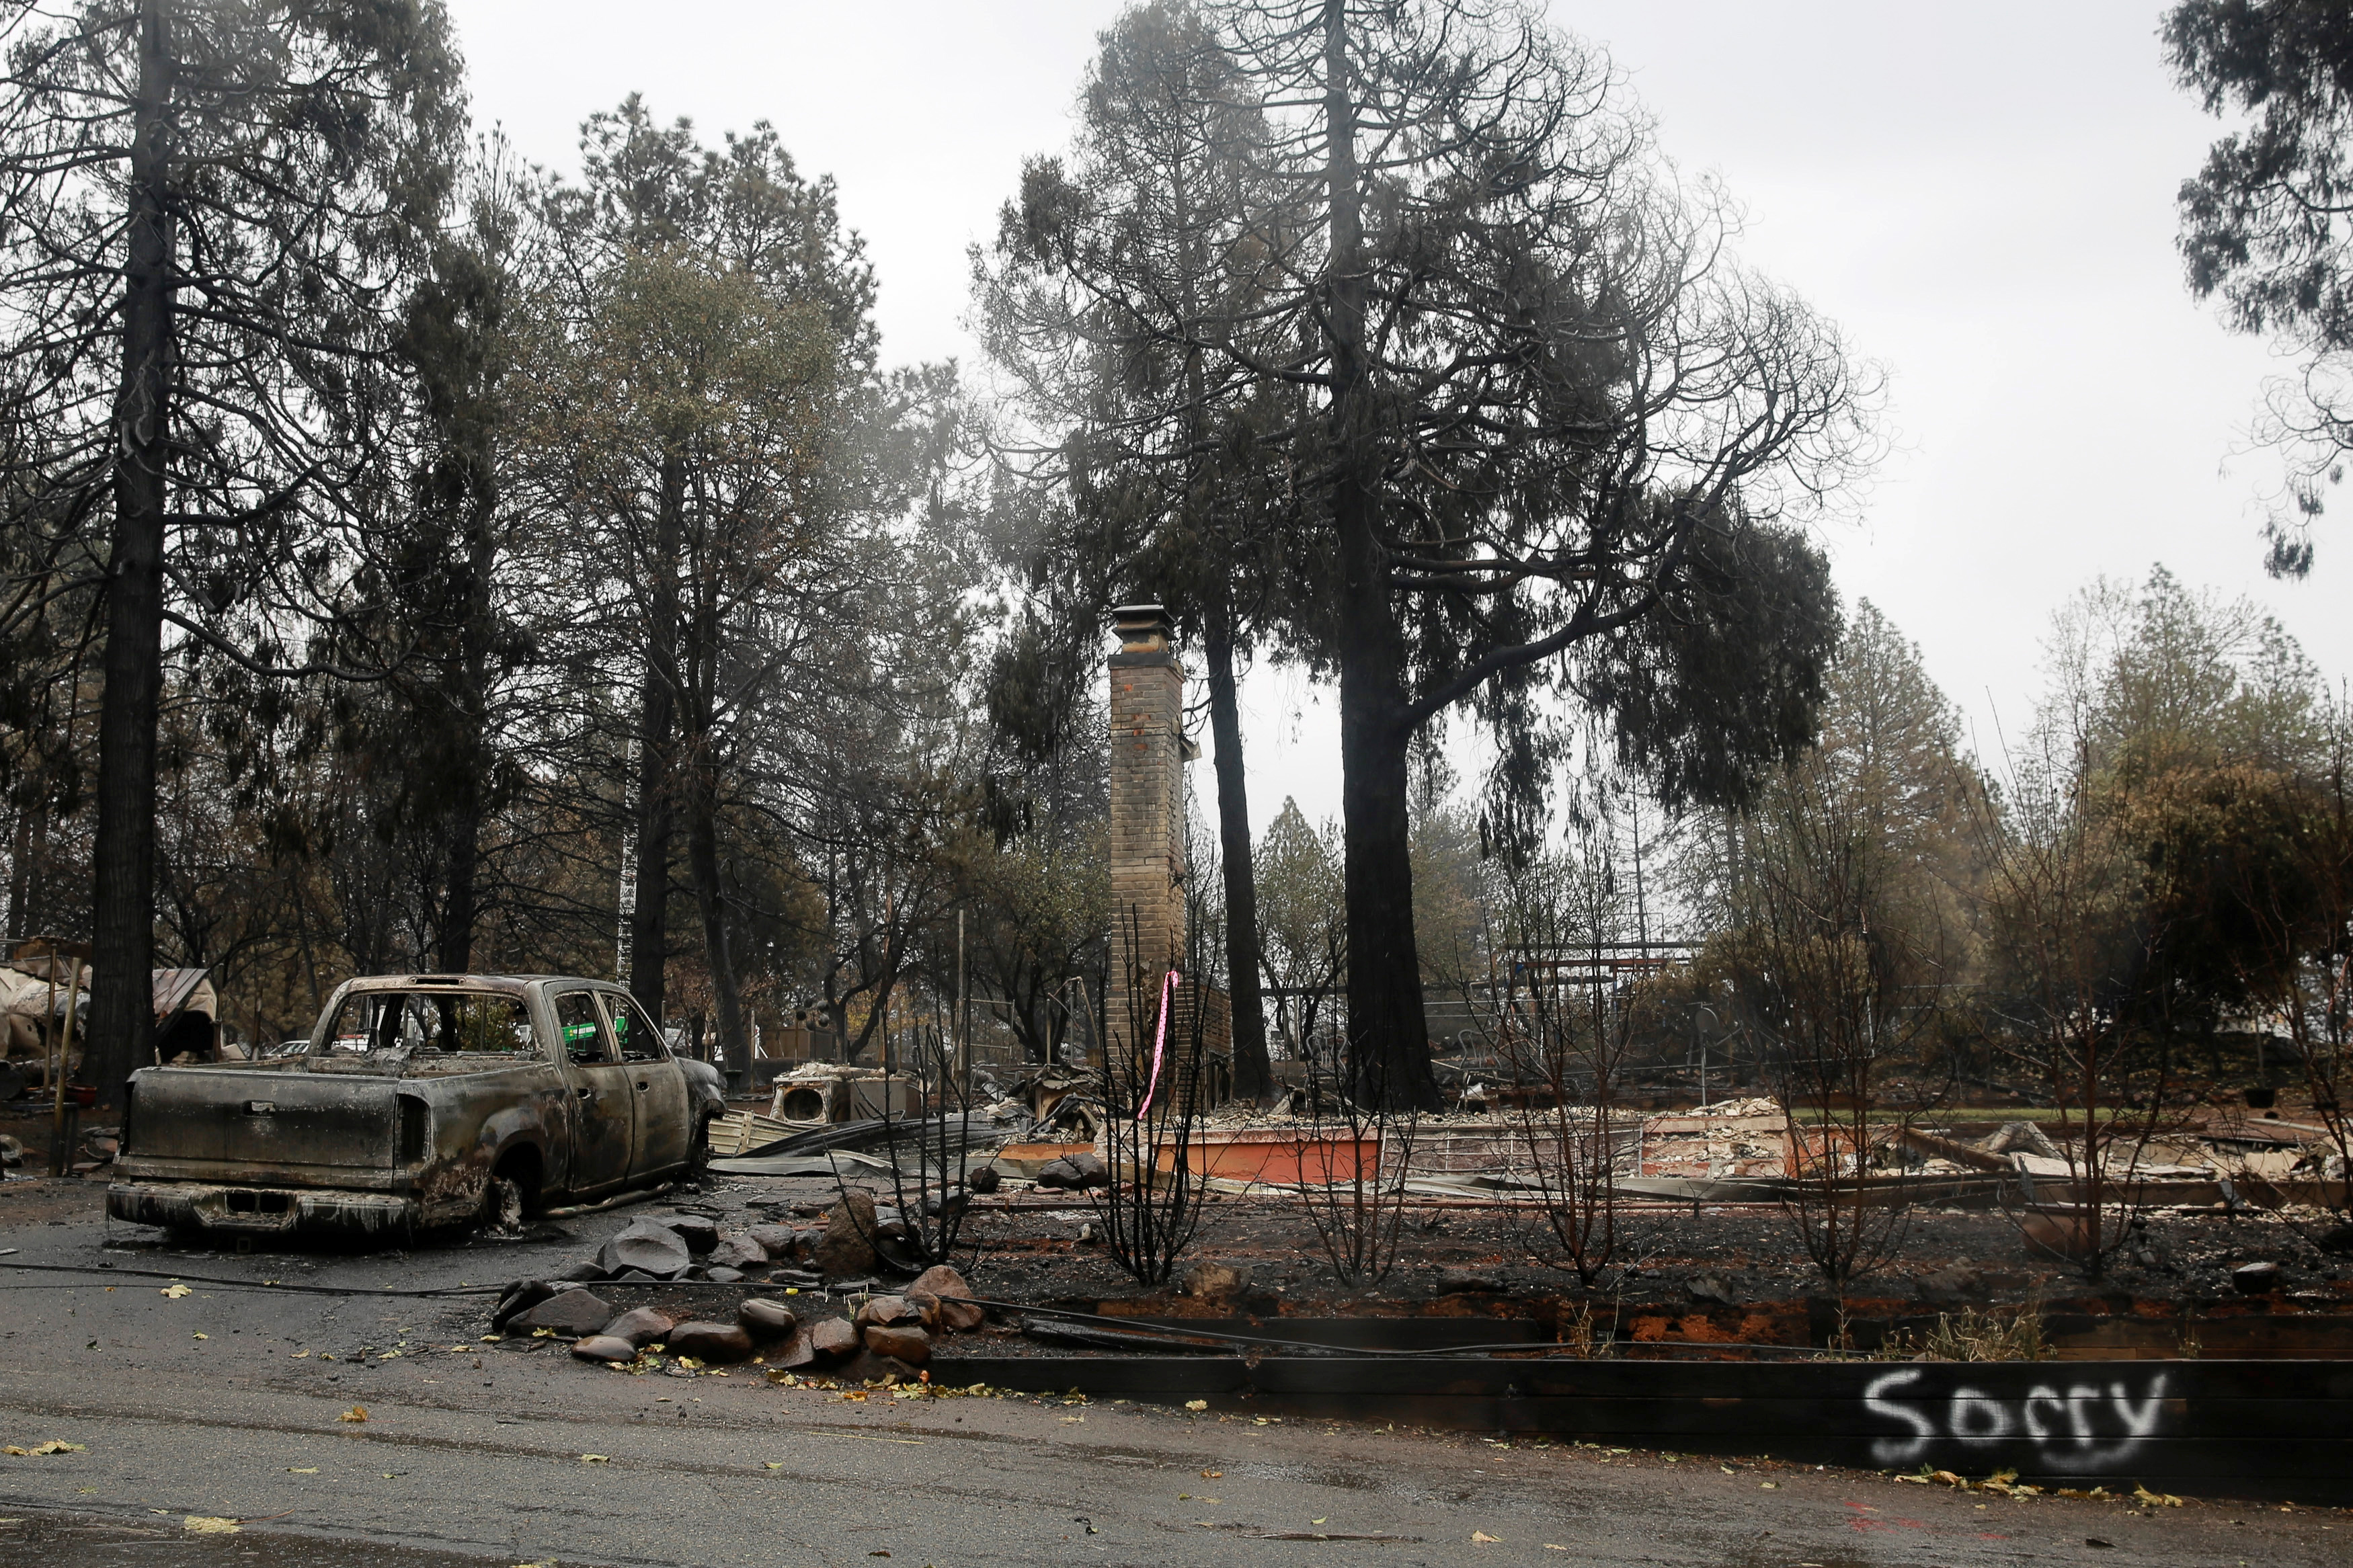 Paradise, CA - Officials: California Wildfire That Killed At